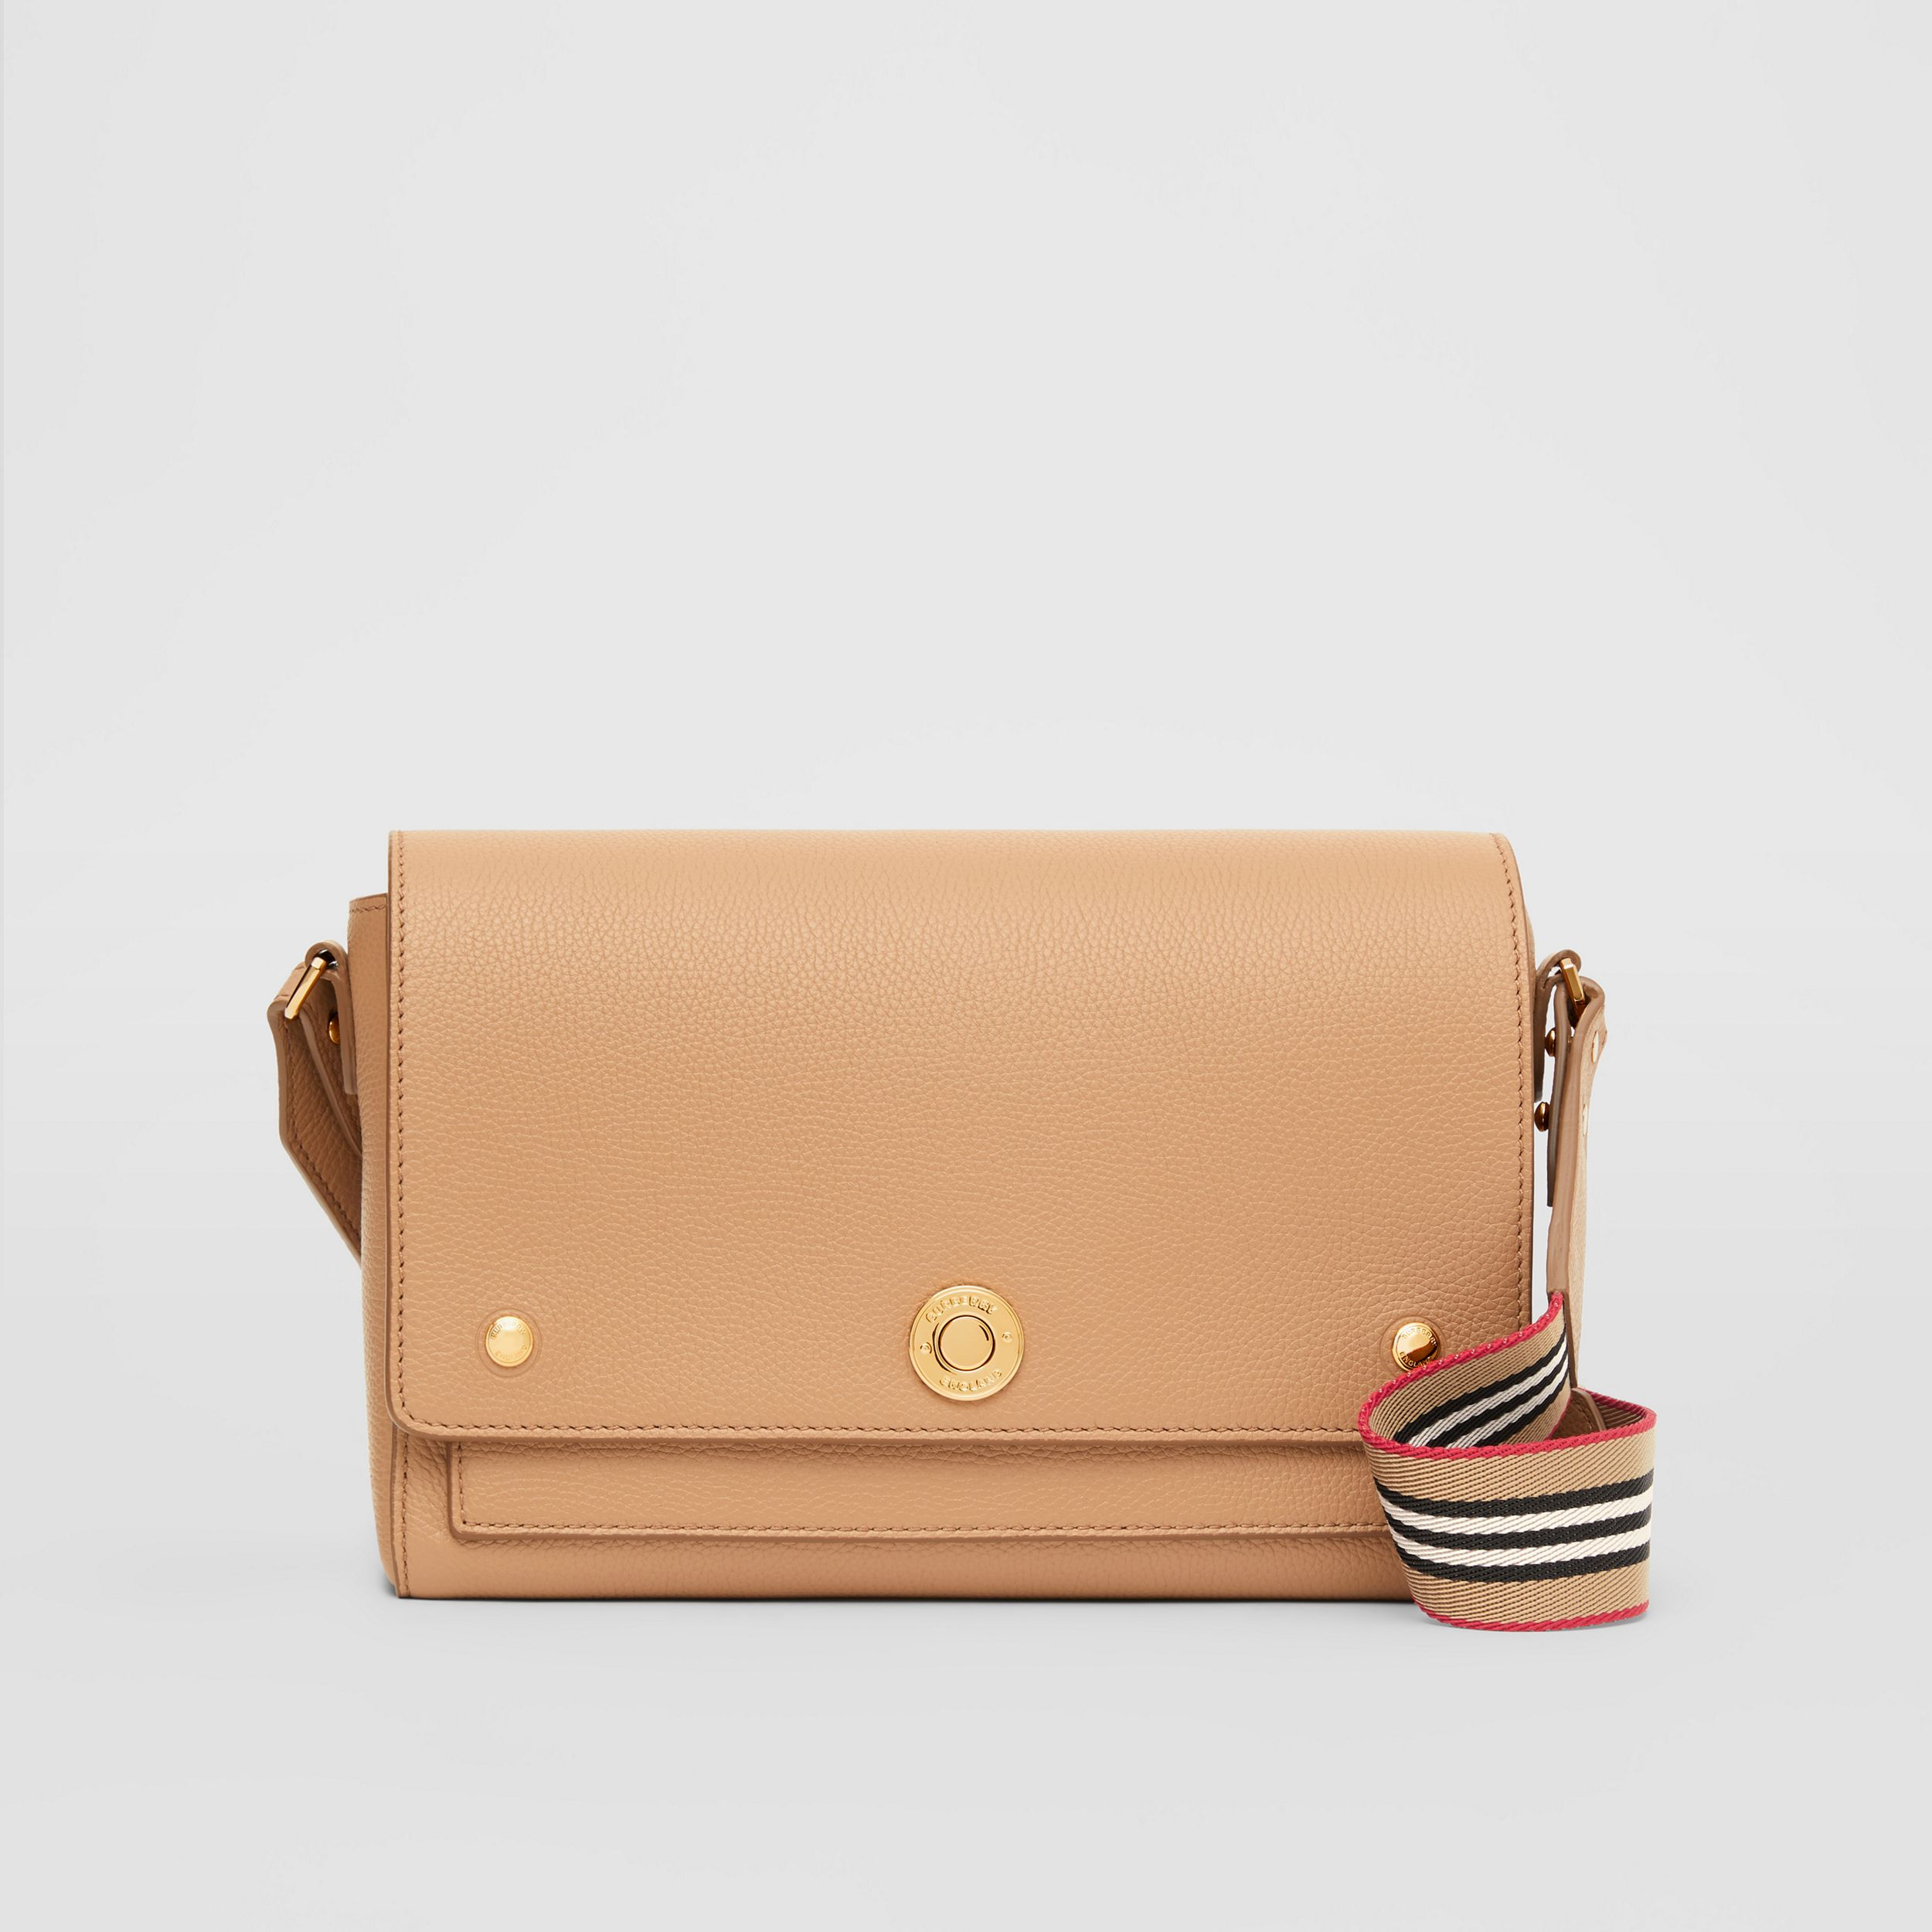 Grainy Leather Note Crossbody Bag in Camel - Women | Burberry Hong Kong S.A.R. - 1